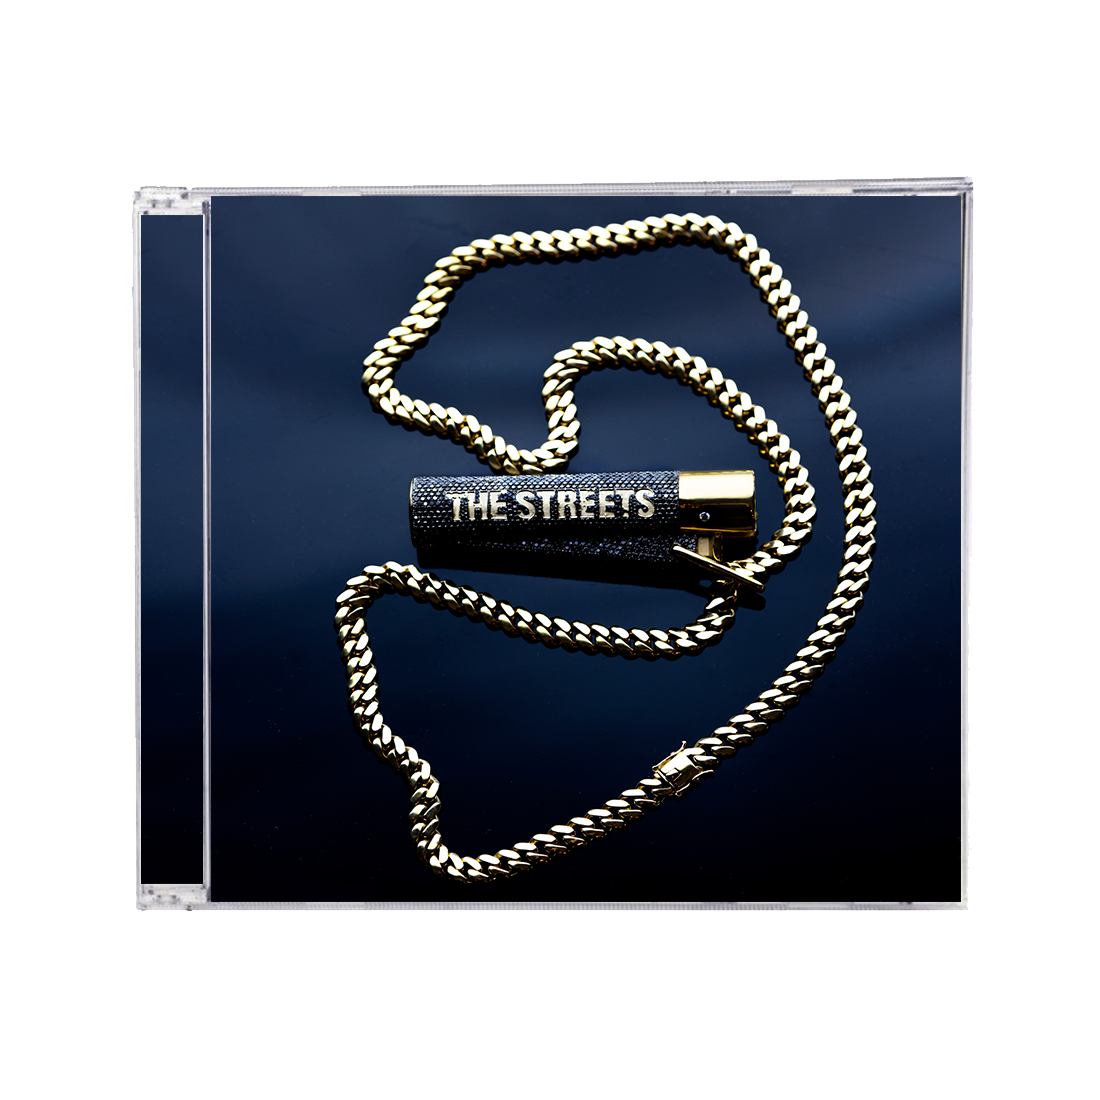 The Streets - None Of Us Are Getting Out This Life Alive CD Album